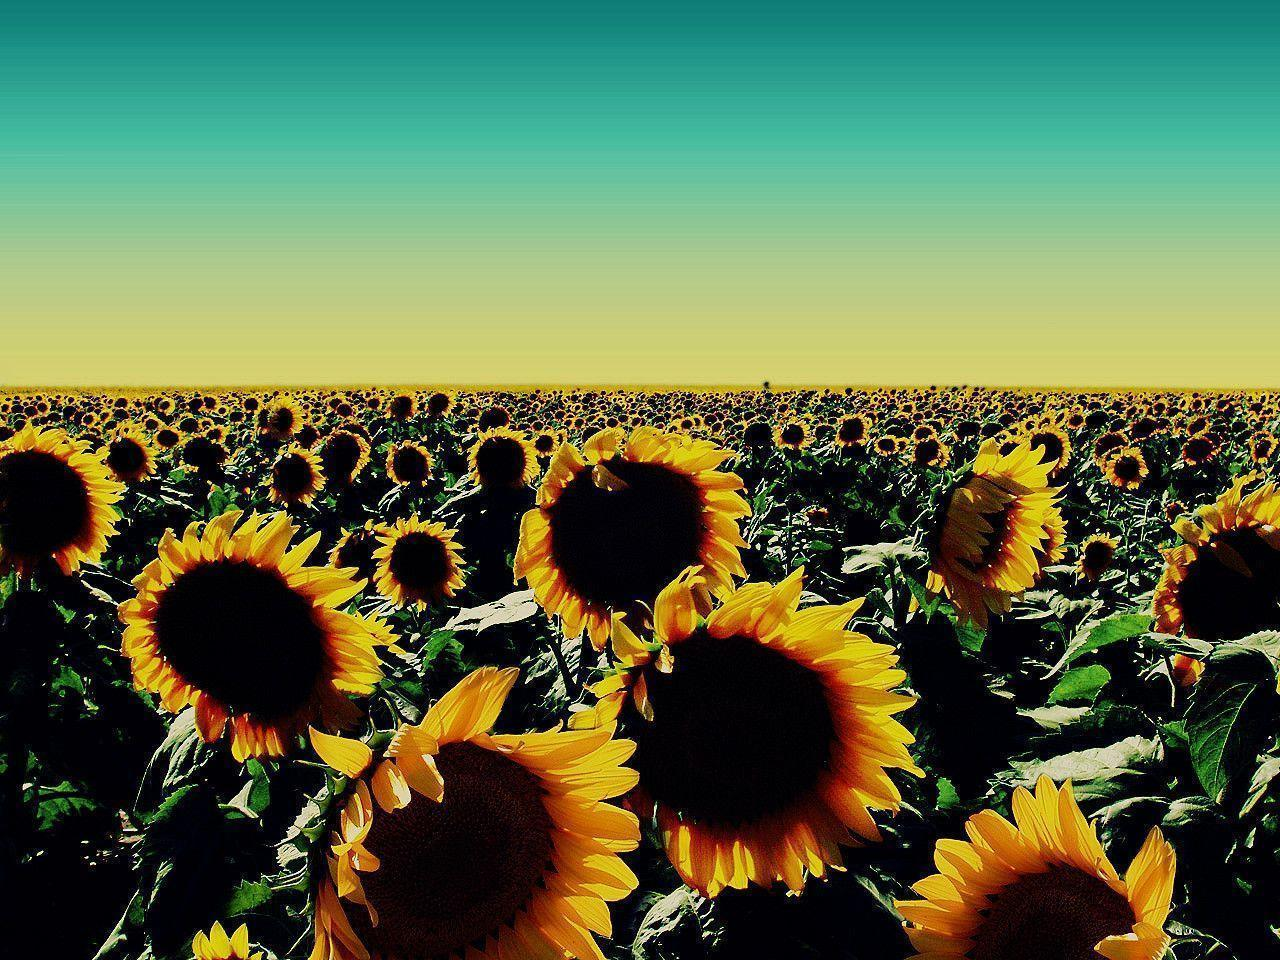 sunflower backgrounds - wallpaper cave